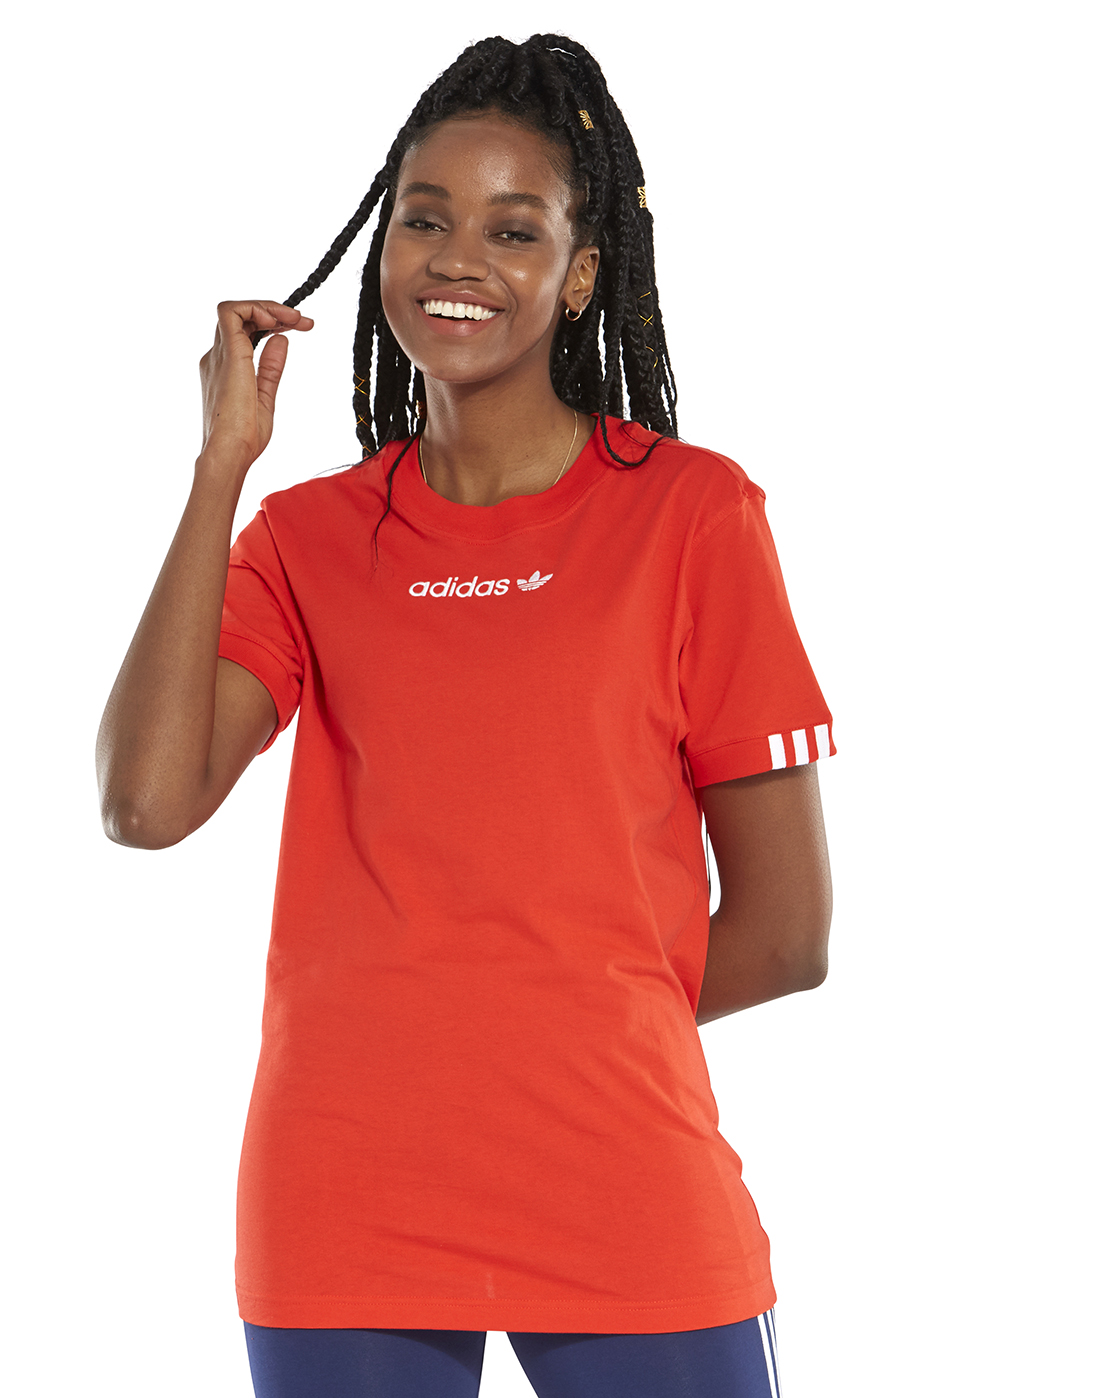 ce27e57d7f4 Women's Red adidas Originals Coeeze T-Shirt | Life Style Sports